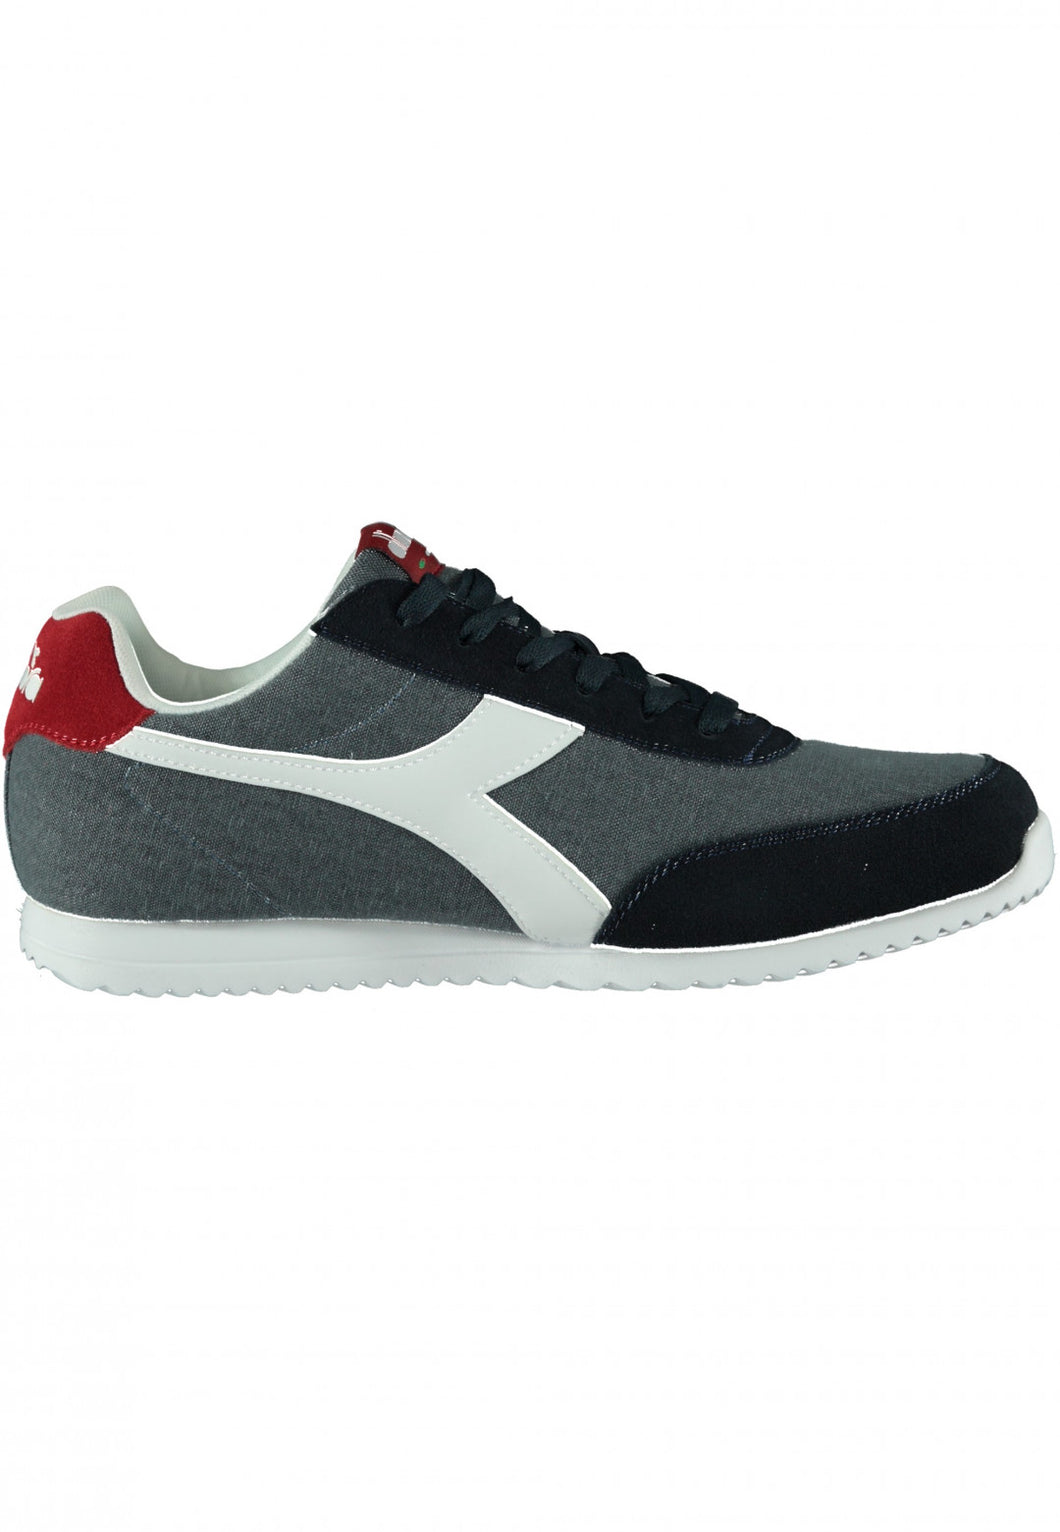 Diadora Jog Light C 101.171578 01 60065